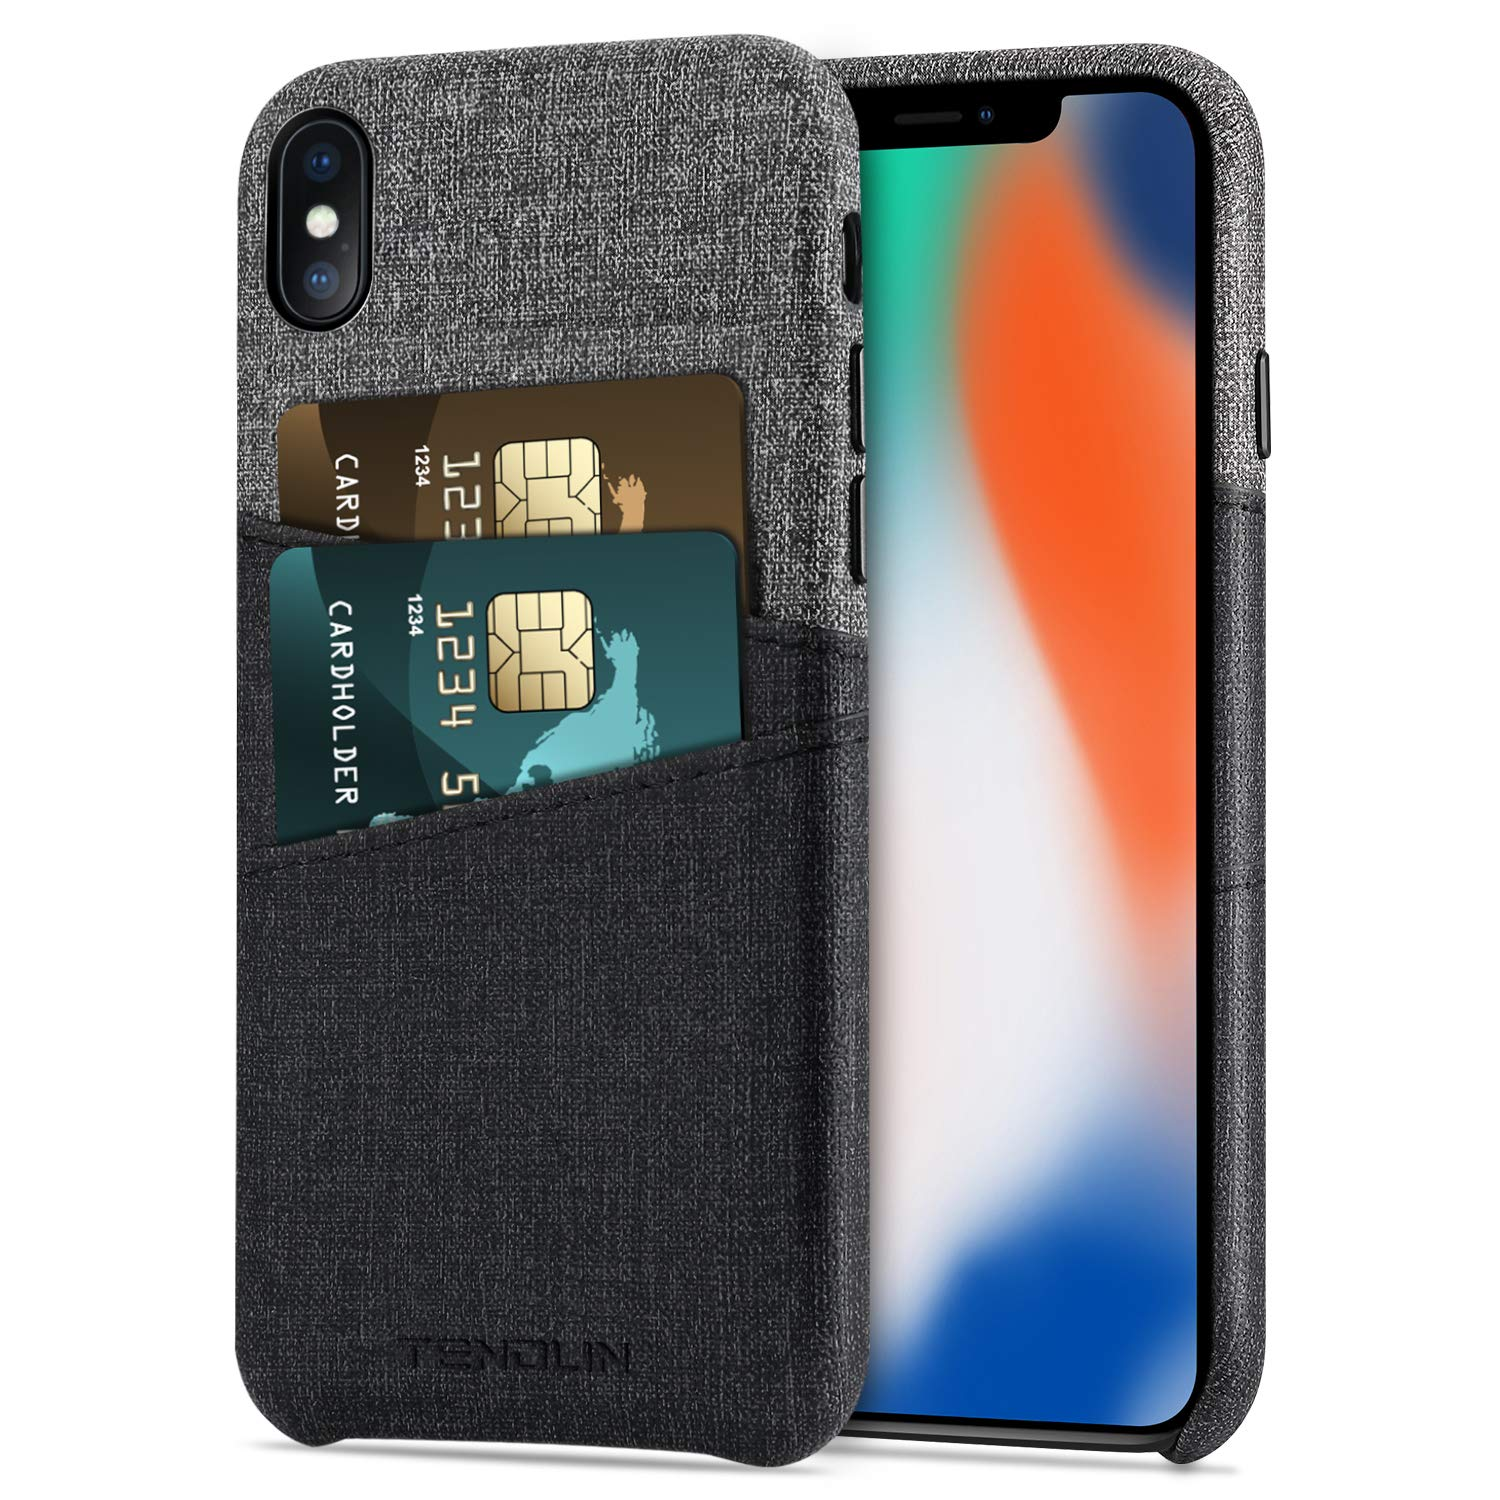 meet 3efc9 a4b9c TENDLIN for iPhone X Wallet Case Good Grip Leather Case with 2 Card Holder  Slots Compatible with iPhone X/iPhone Xs